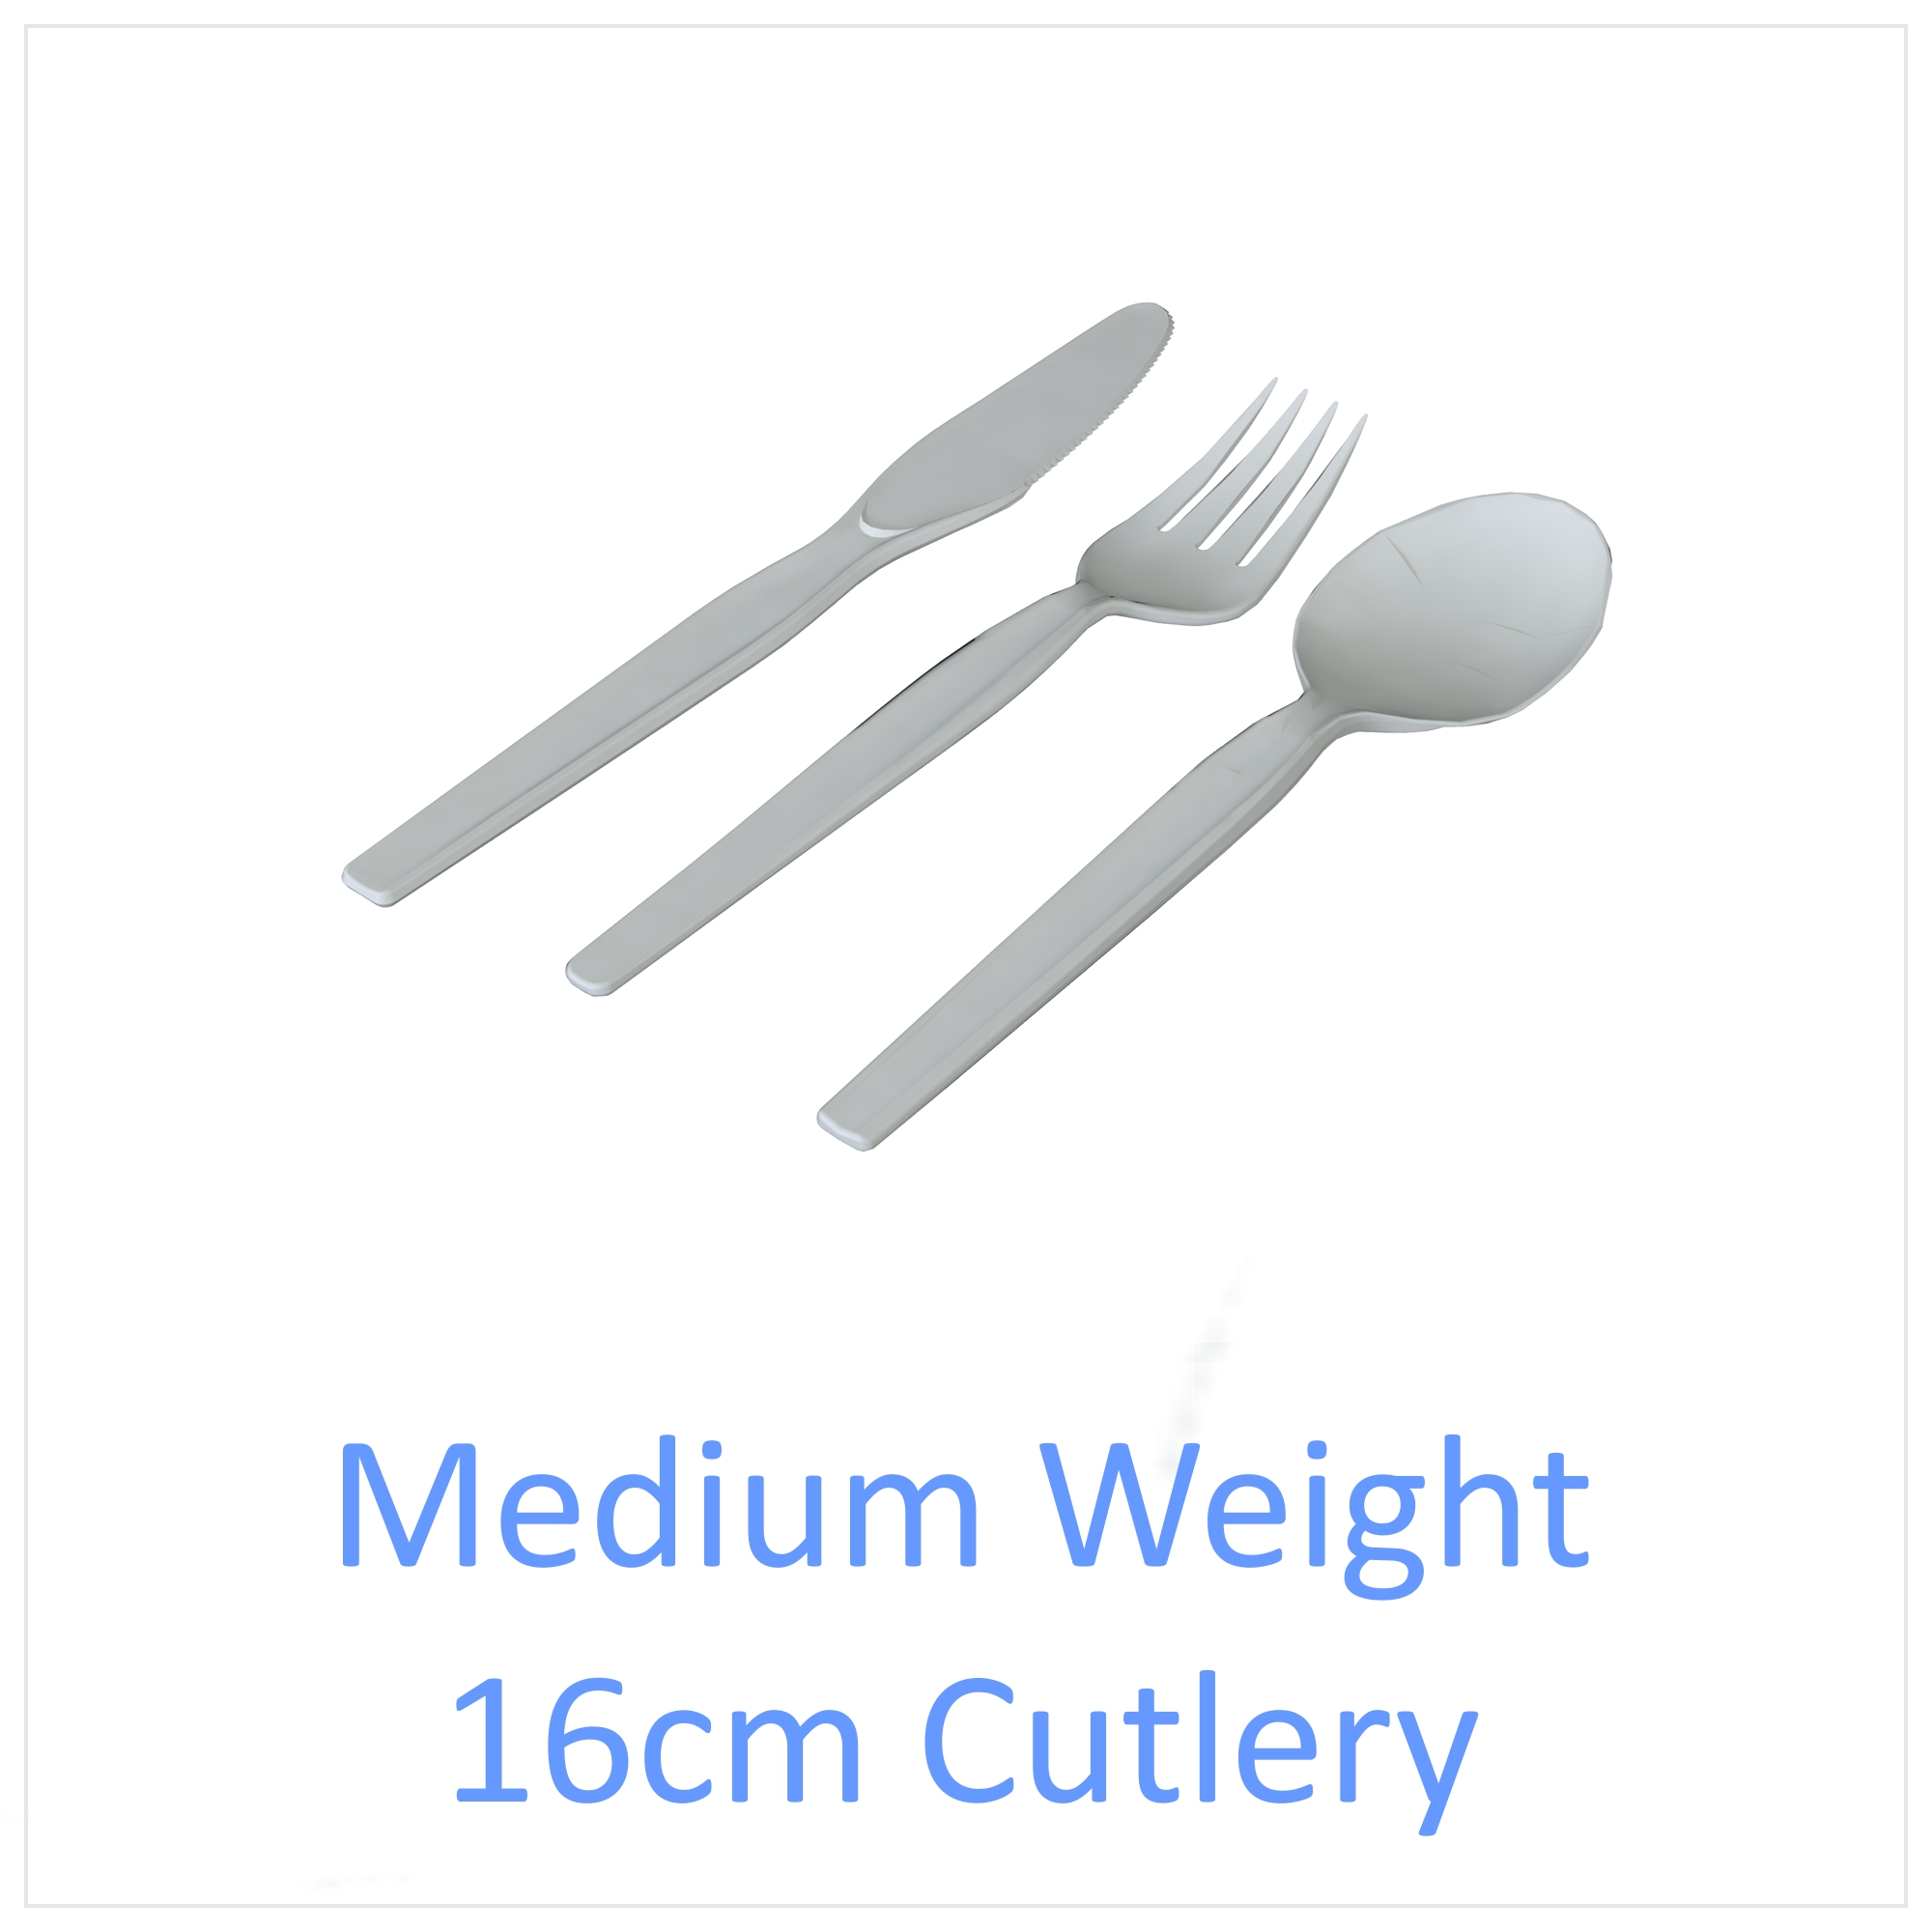 Medium Weight Cutlery